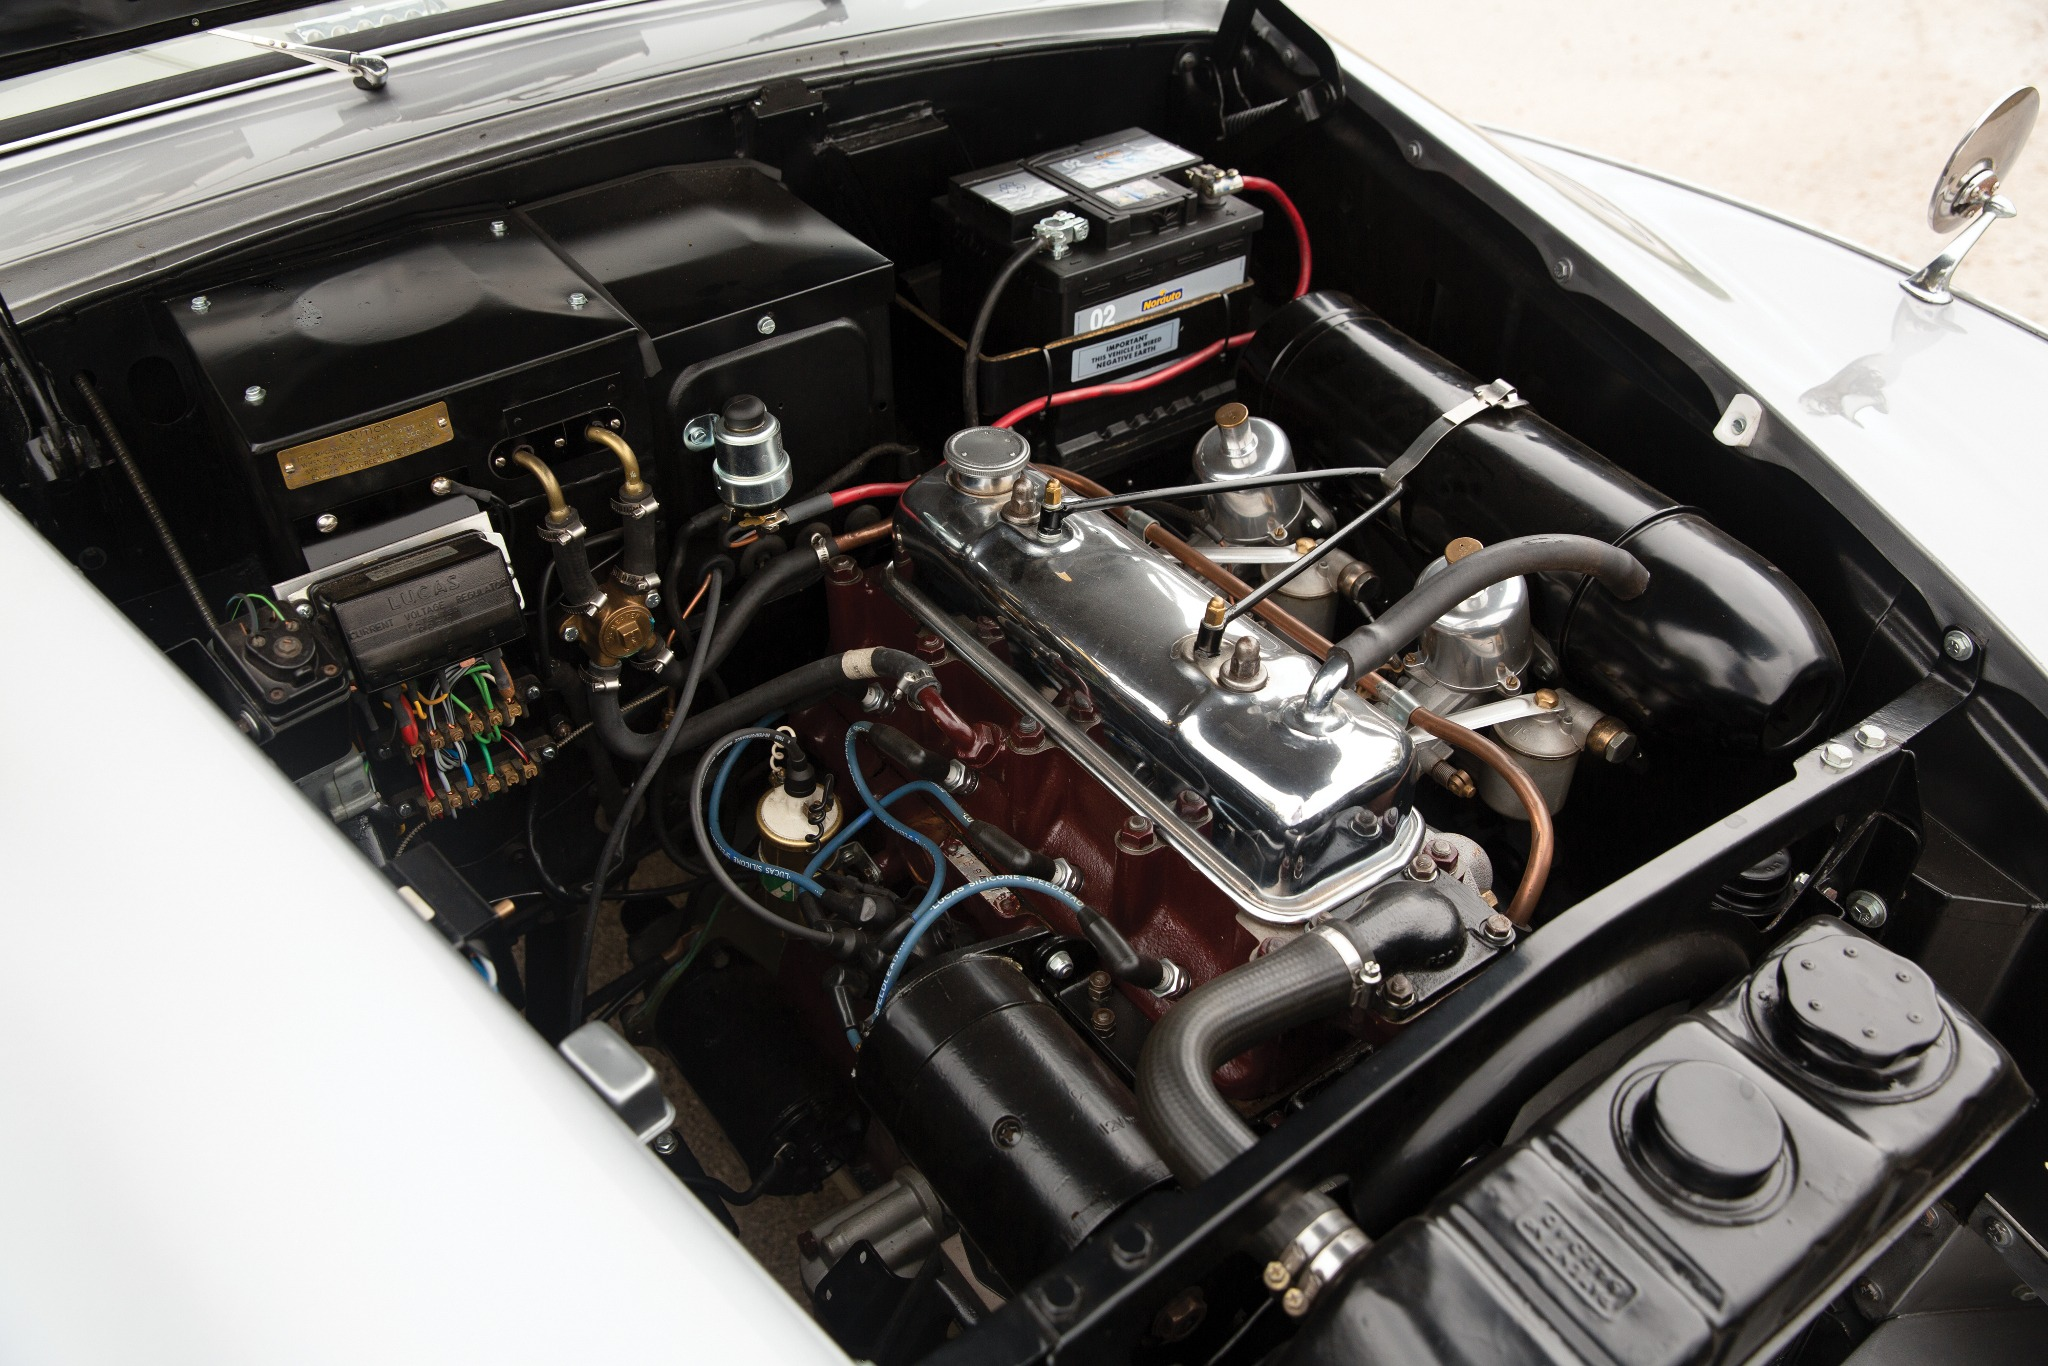 Austin A90 Atlantic engine